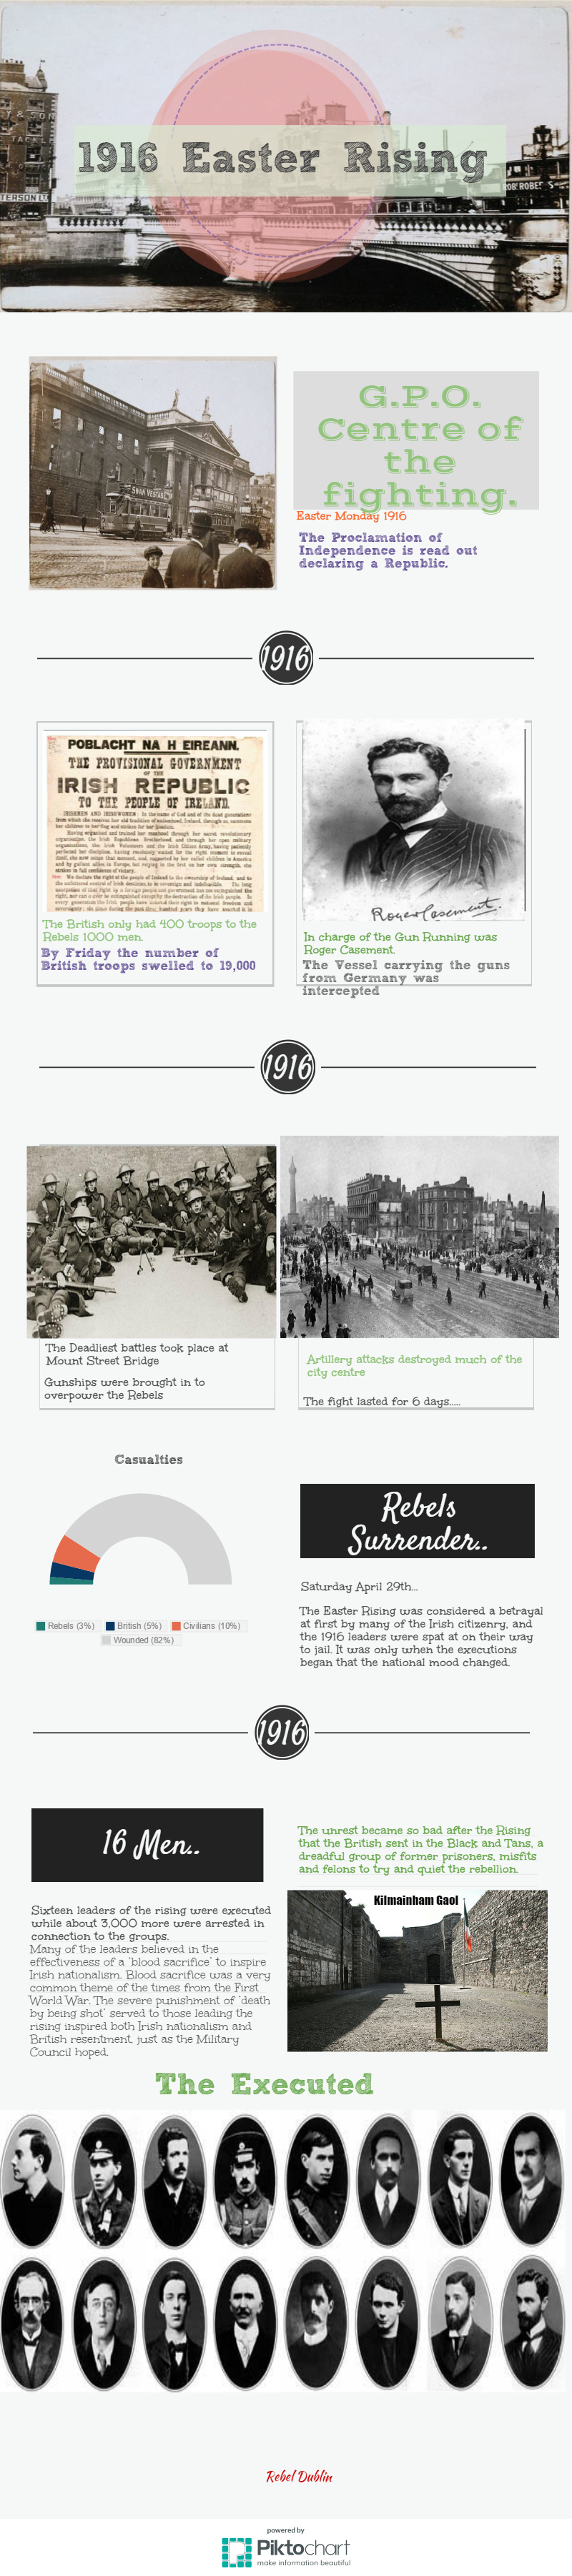 1916 Rising Infographic